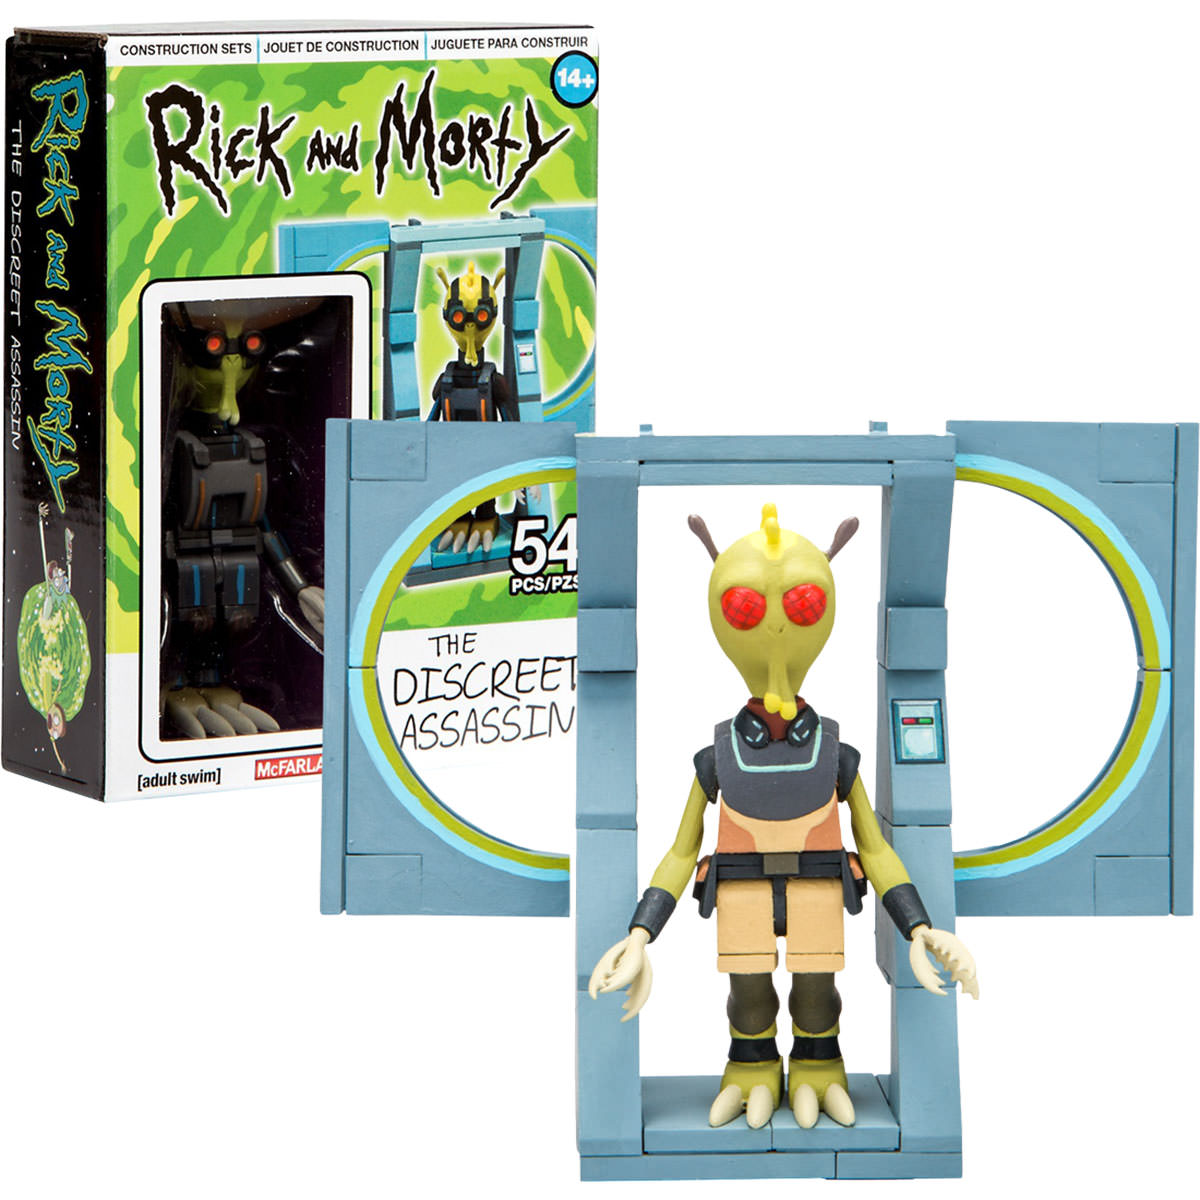 Rick and Morty The Discreet Assassin McFarlane Toys 54 Pcs New in Box